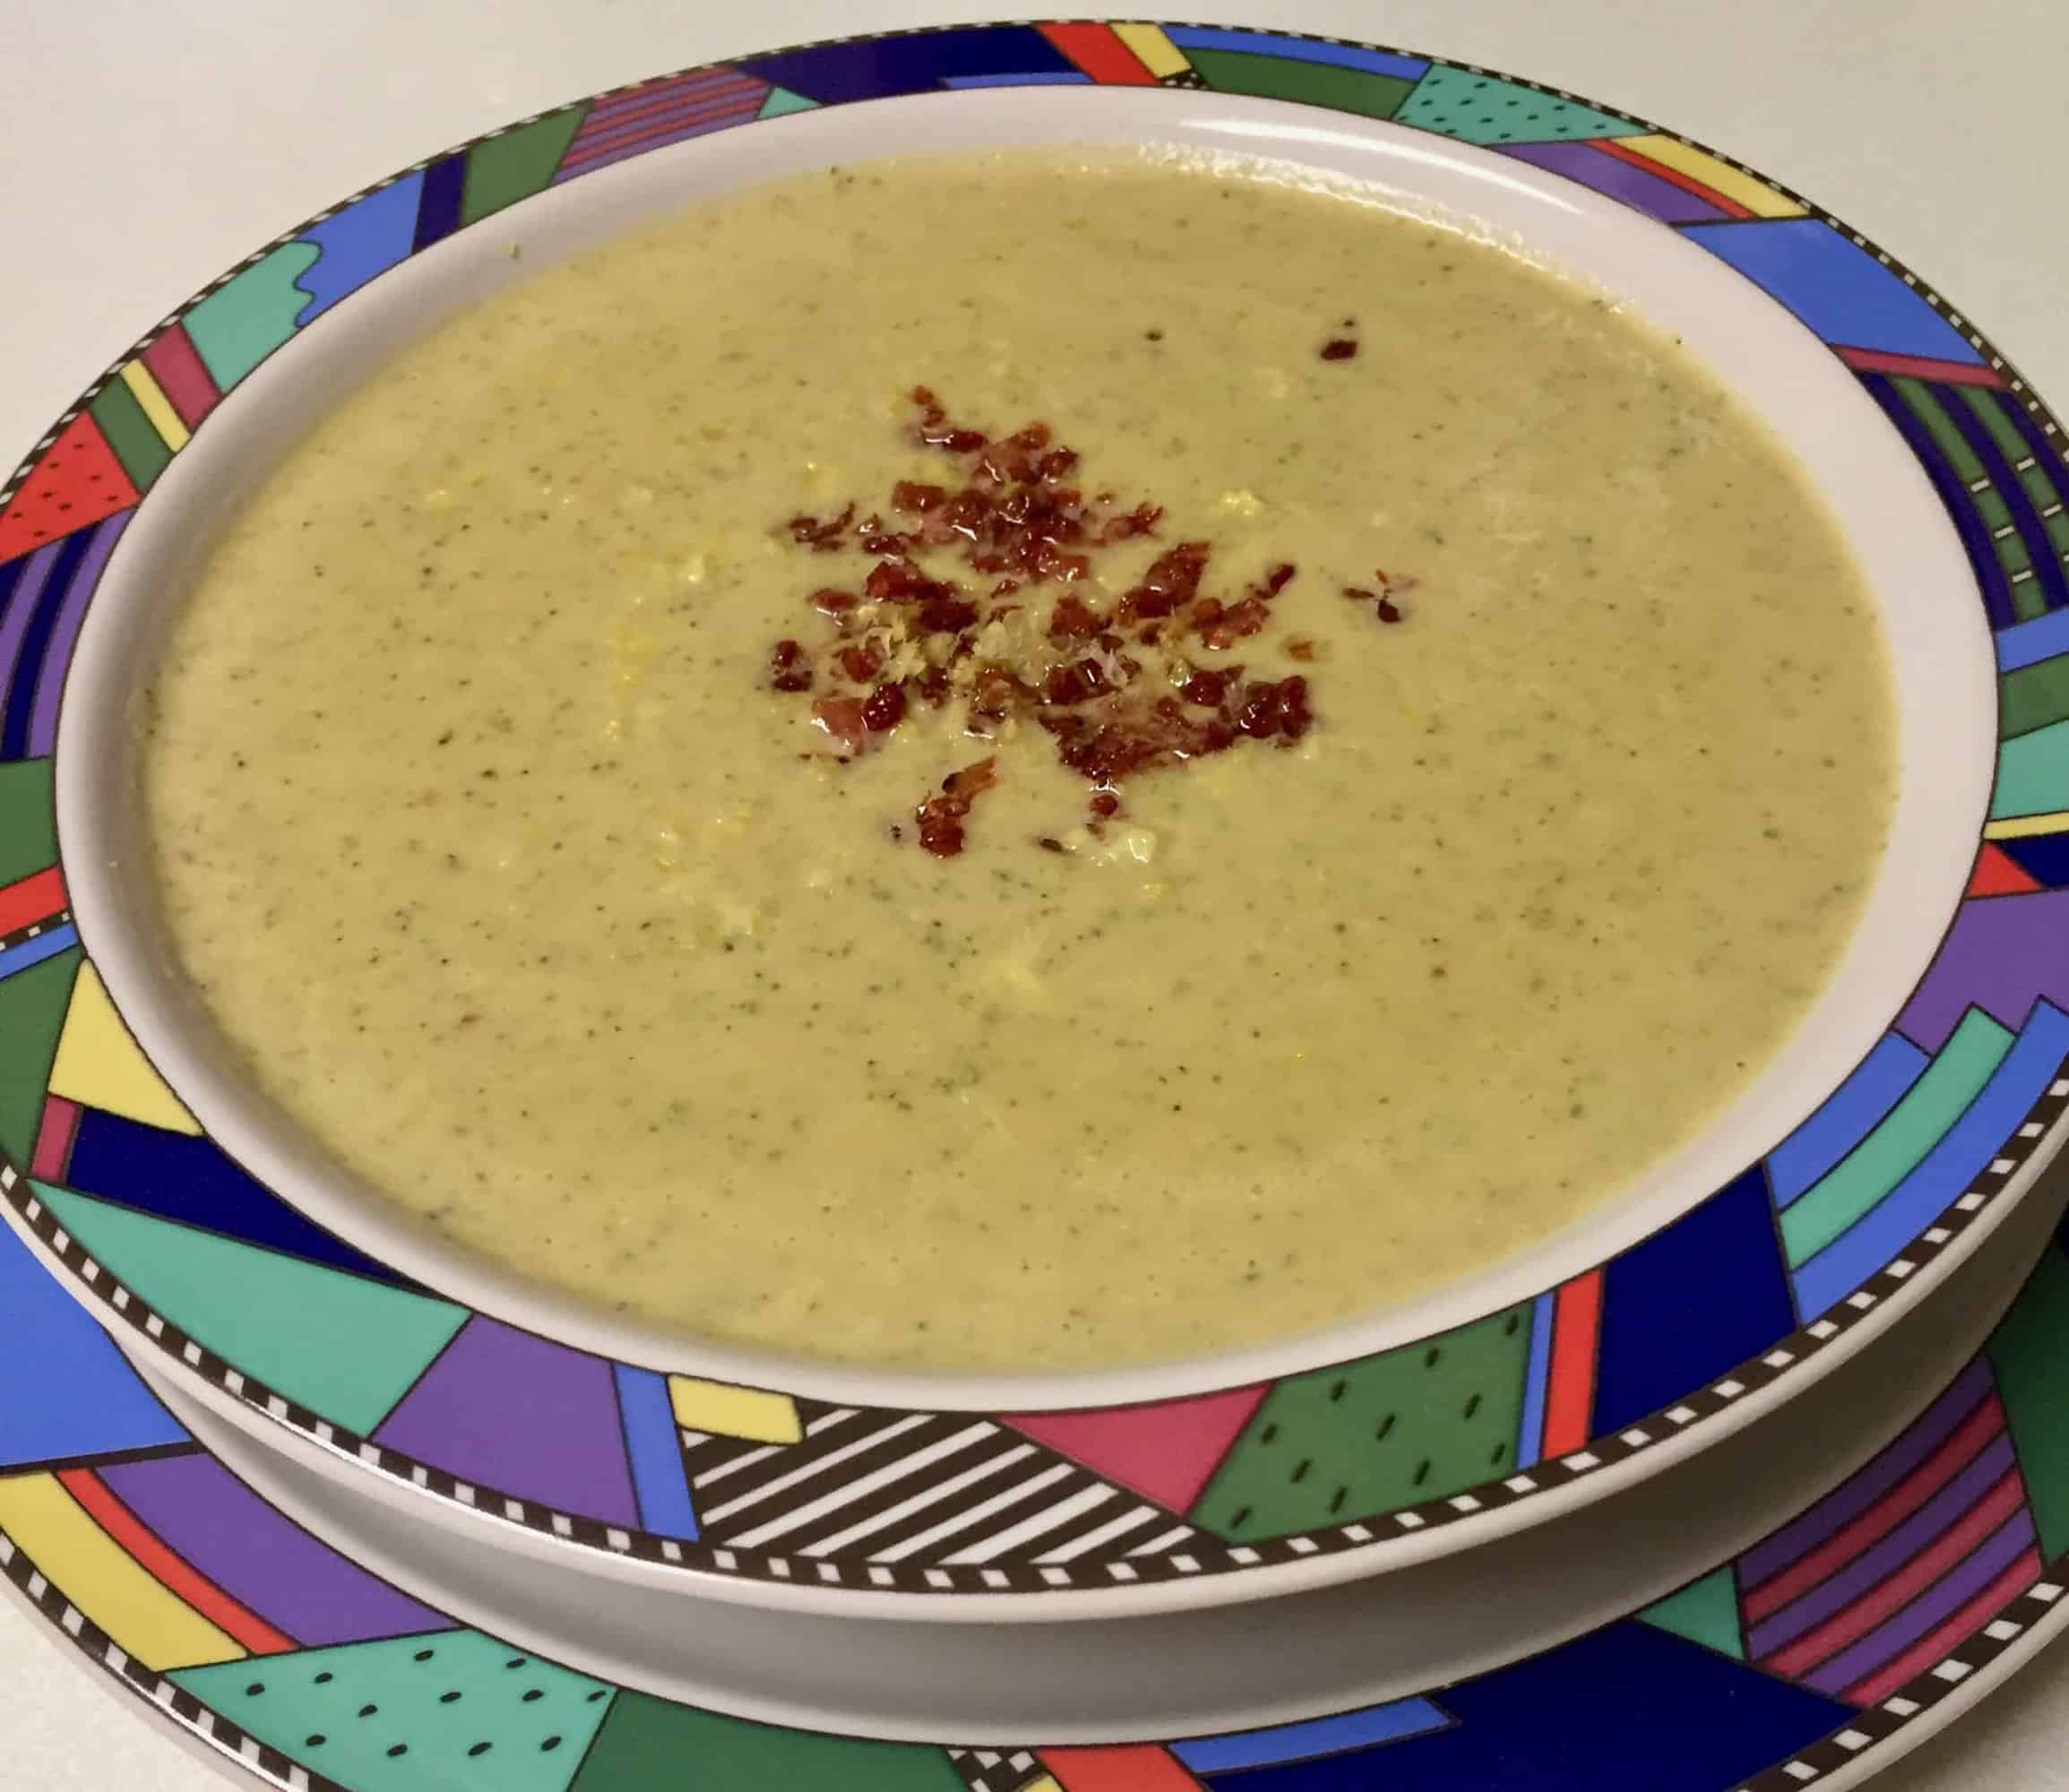 Fresh from my Cheese Journey: Broccoli and Blue Cheese Soup